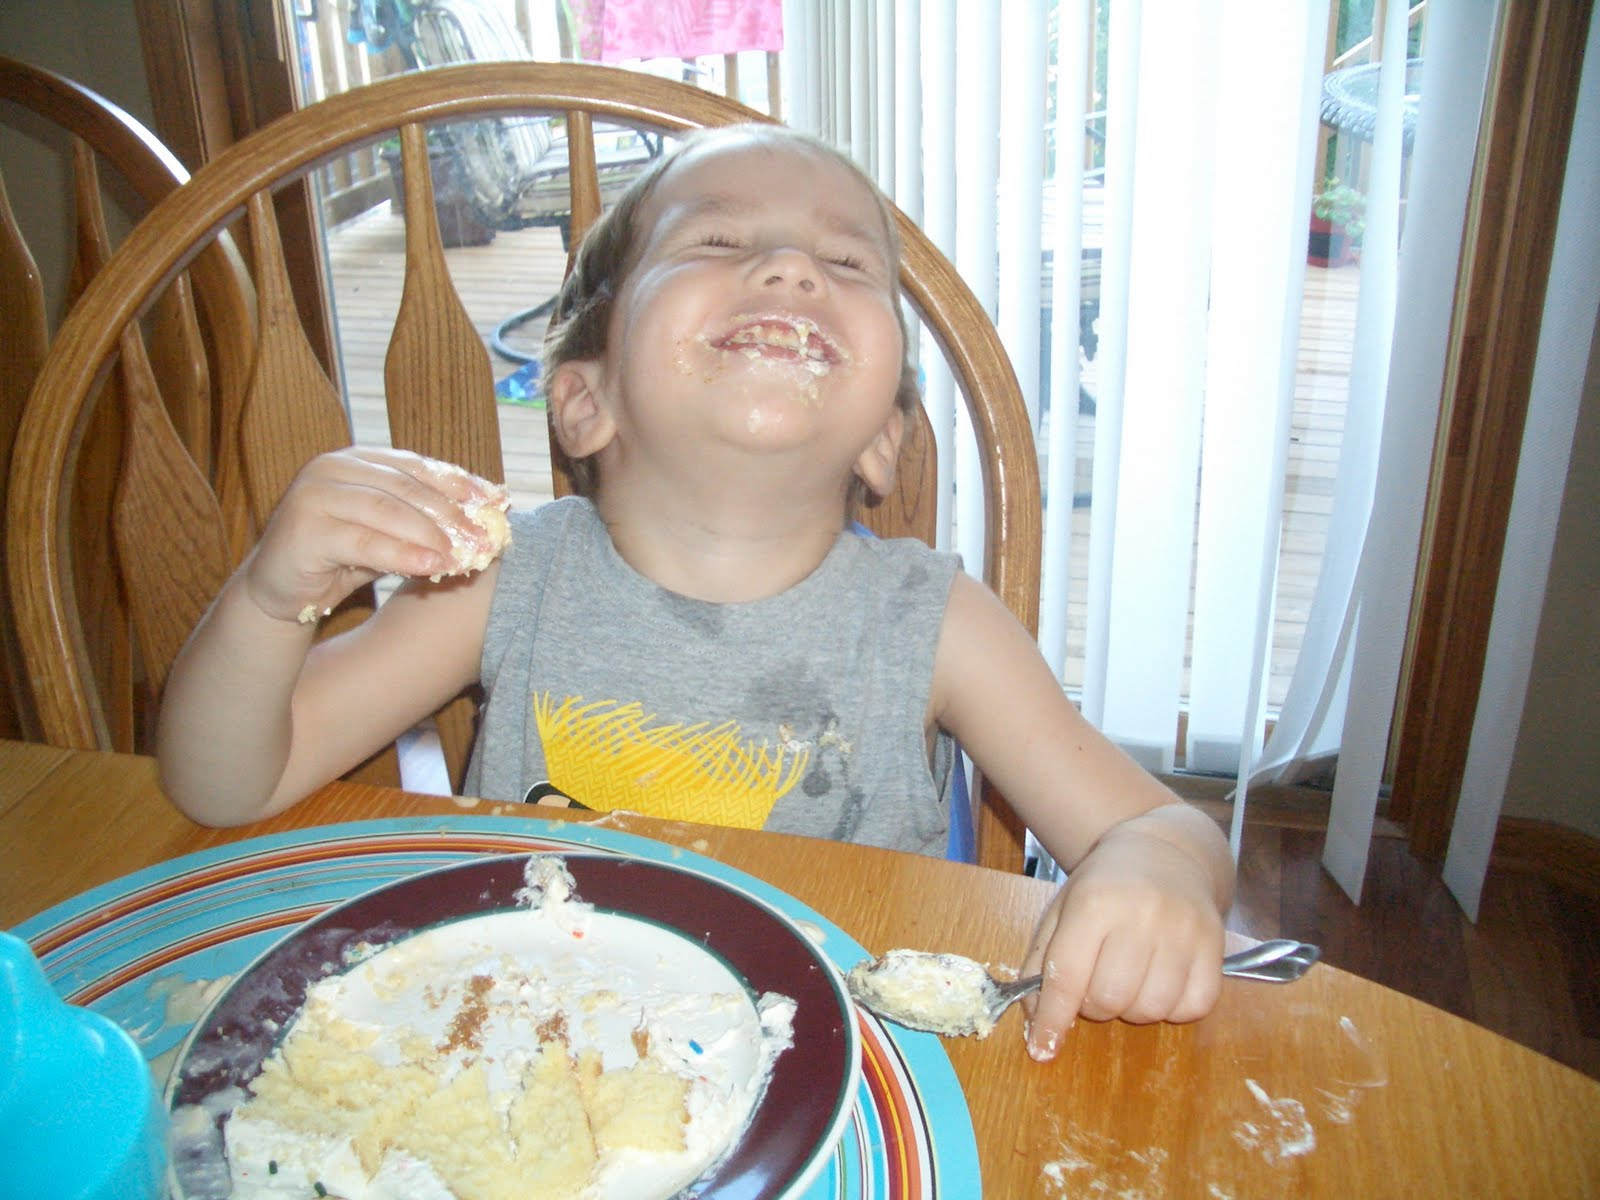 http://4.bp.blogspot.com/_5pgzEVd3RwI/THGfbyw9piI/AAAAAAAAAzs/yhwcoufphNU/s1600/Sam+laughing+cake.JPG#laughing%20cake